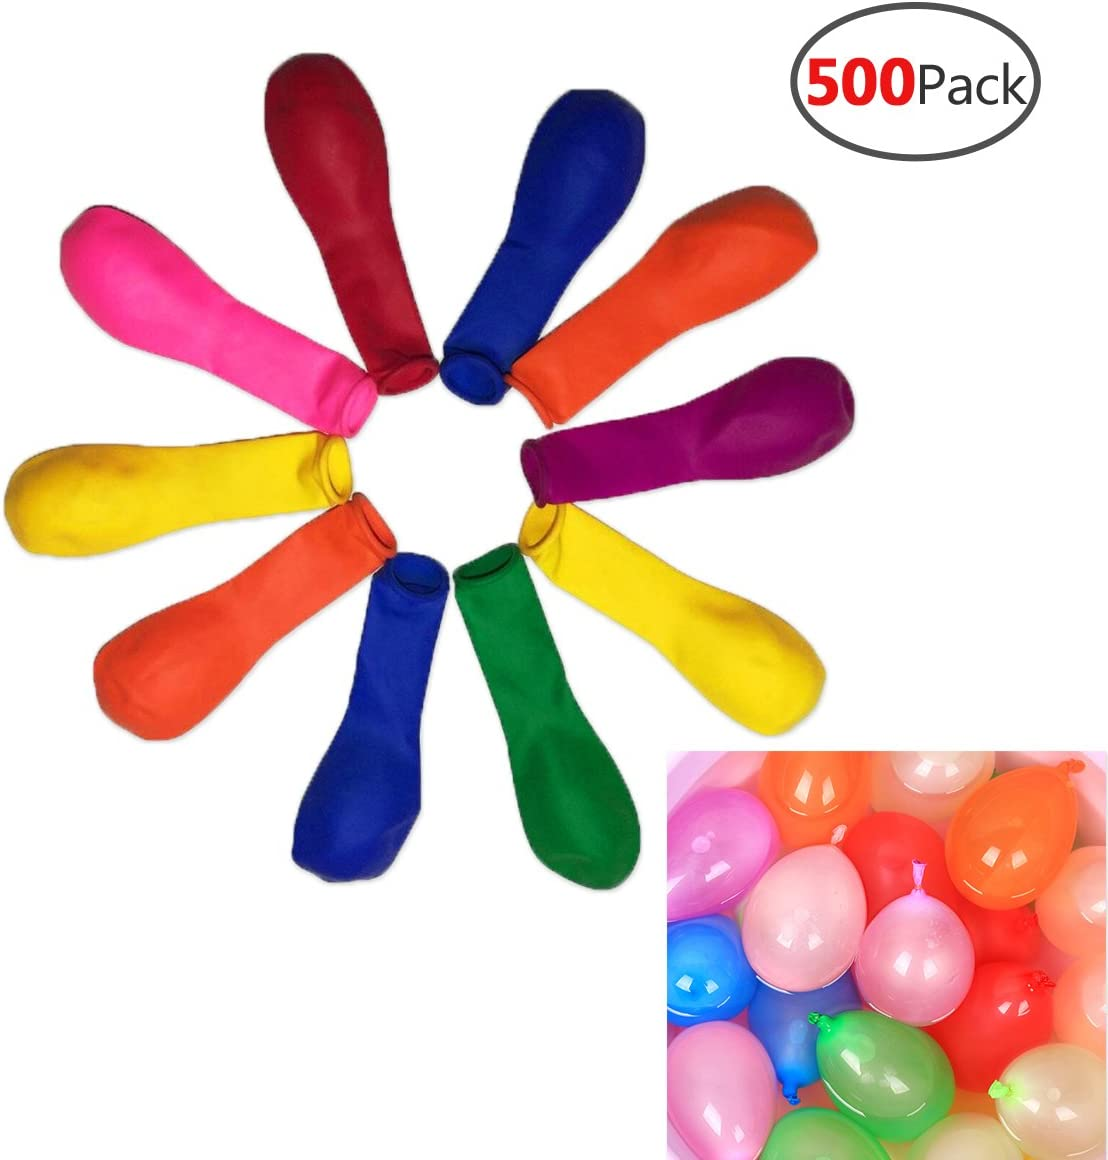 Crochet Ecofriendly Water Balloons Reusable Water Balloons Pool Accessory Colorful Birthday Party Favor Water Bombs Summer Fun for Kids